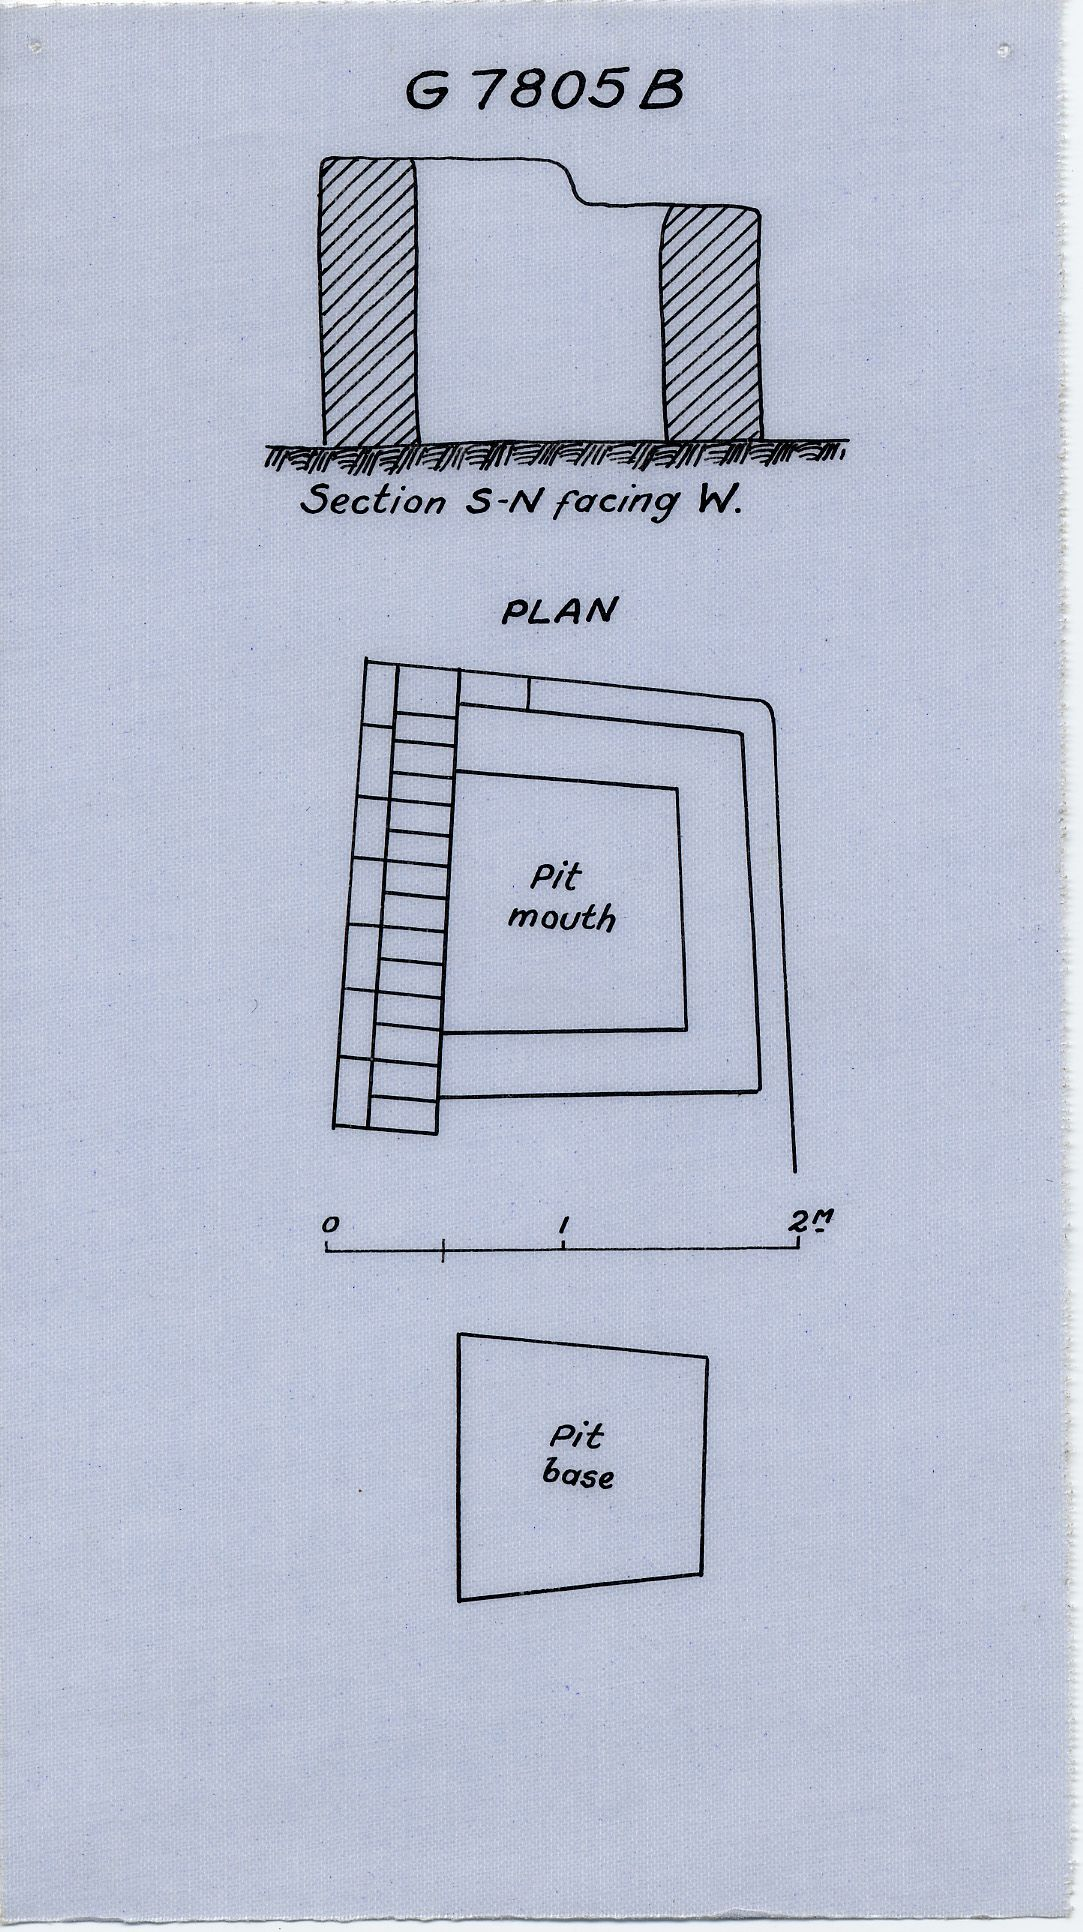 Maps and plans: G 7805, Shaft B